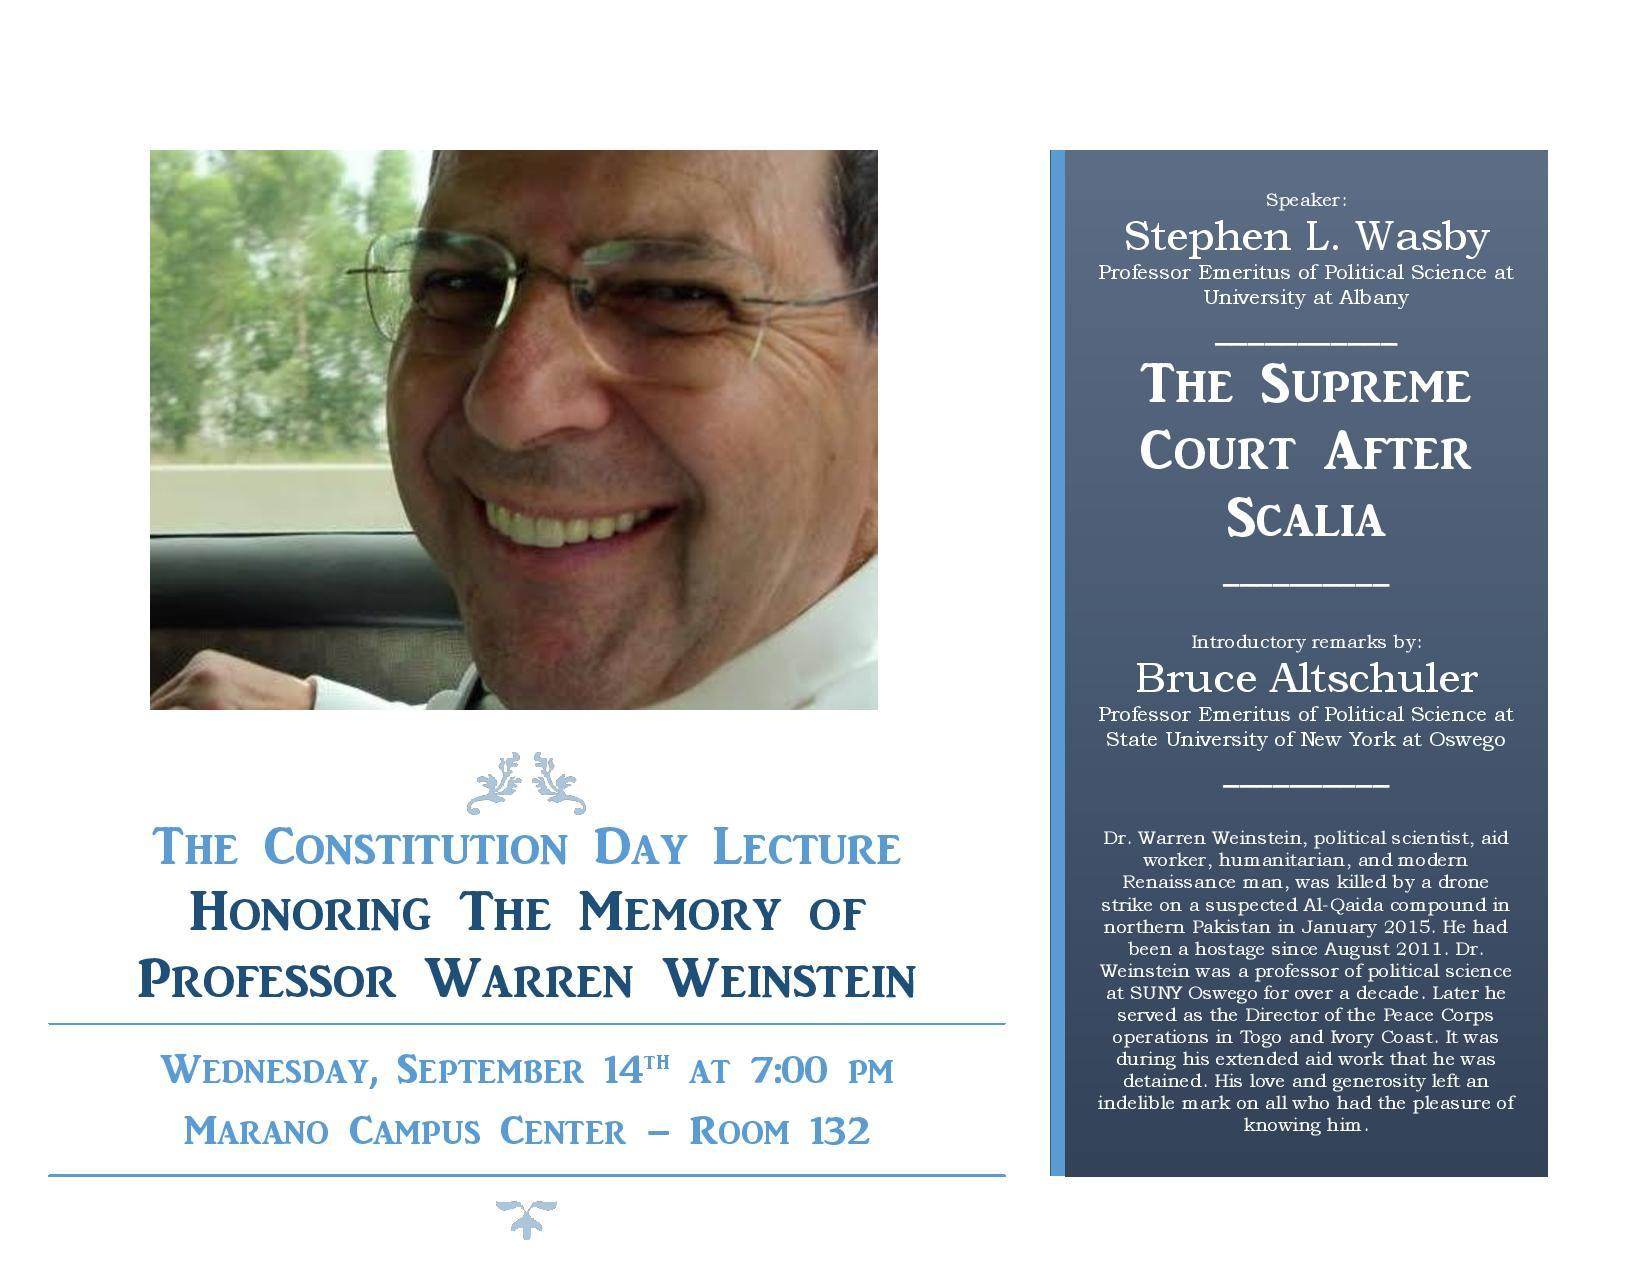 Dr. Stephen Wasby presents a Constitution Day lecture in memory of Weinstein